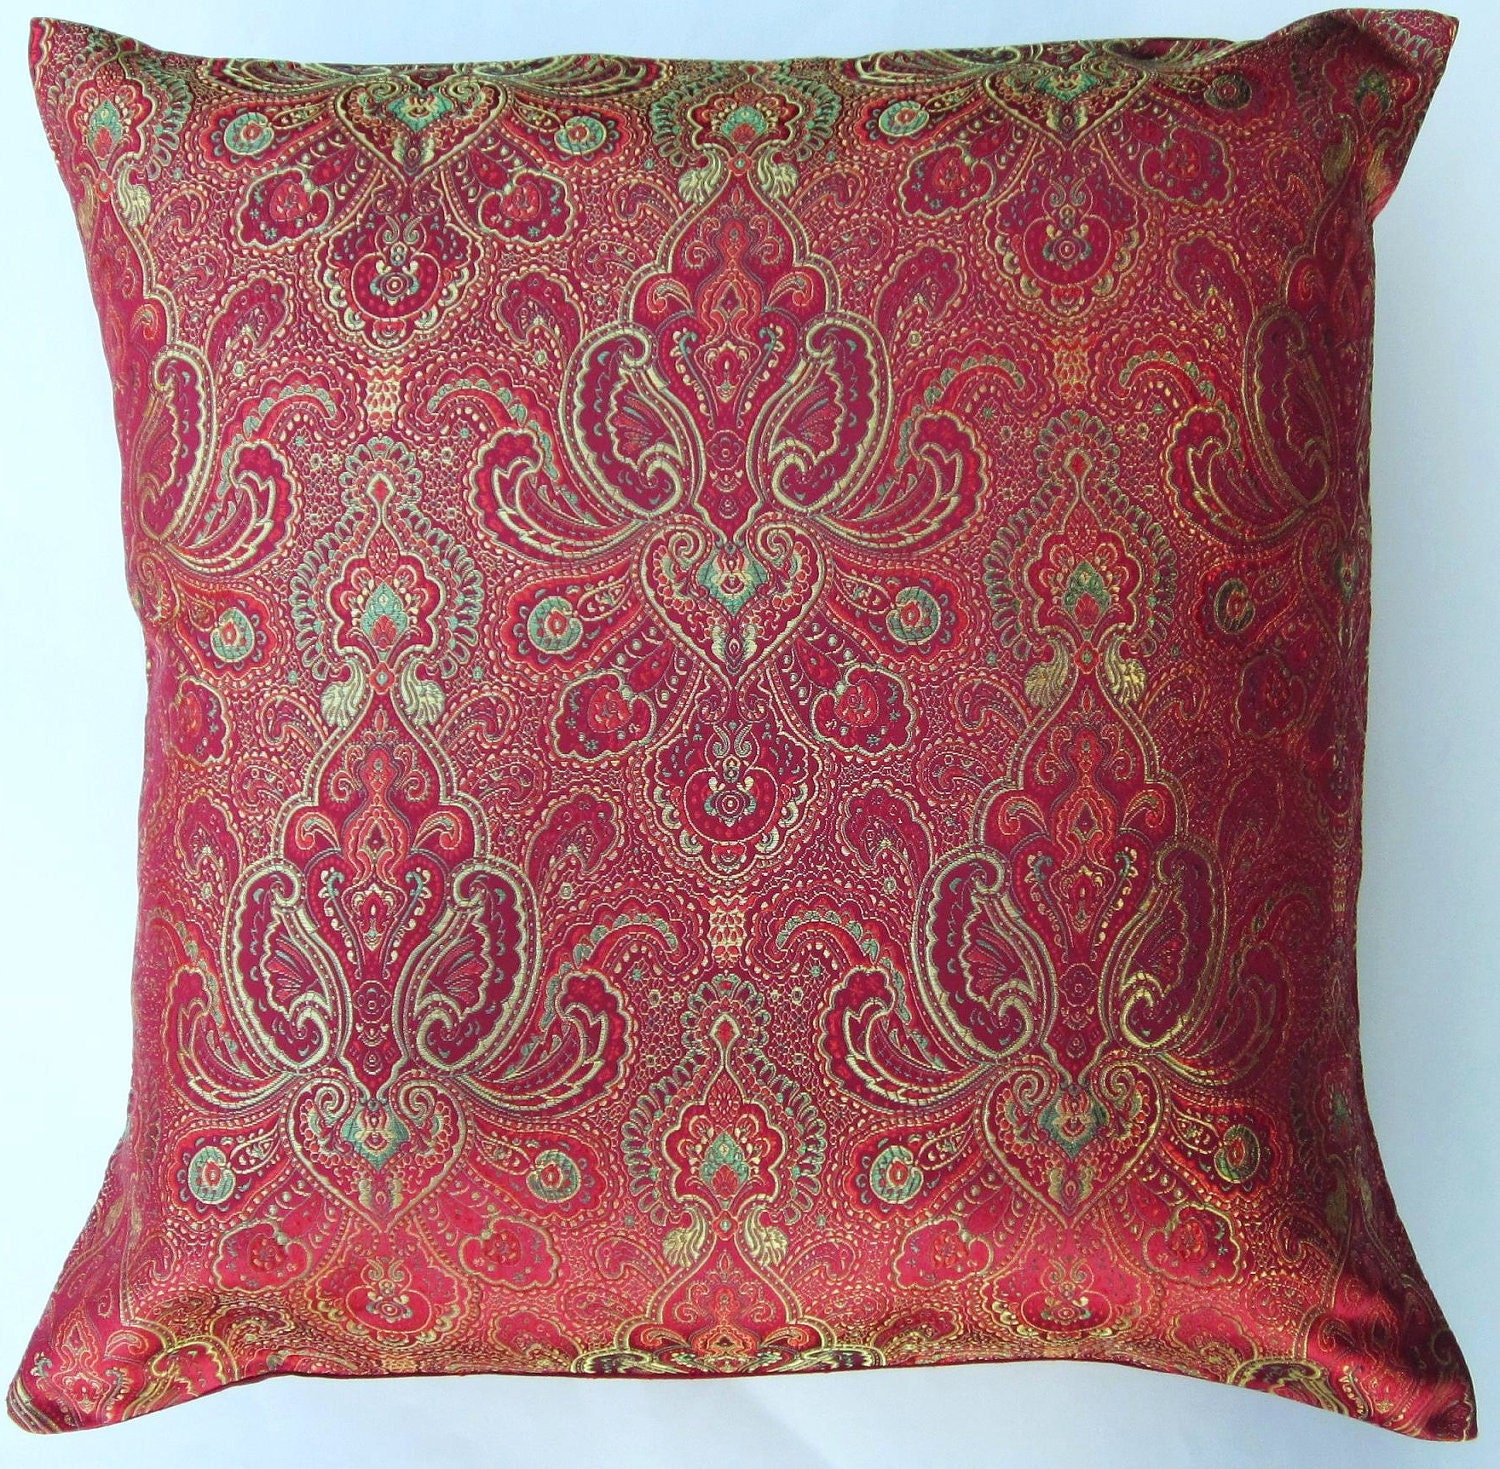 Throw Pillows Red And Gold : Red and Gold Throw Pillow Cover Satin Brocade Cushion Cover